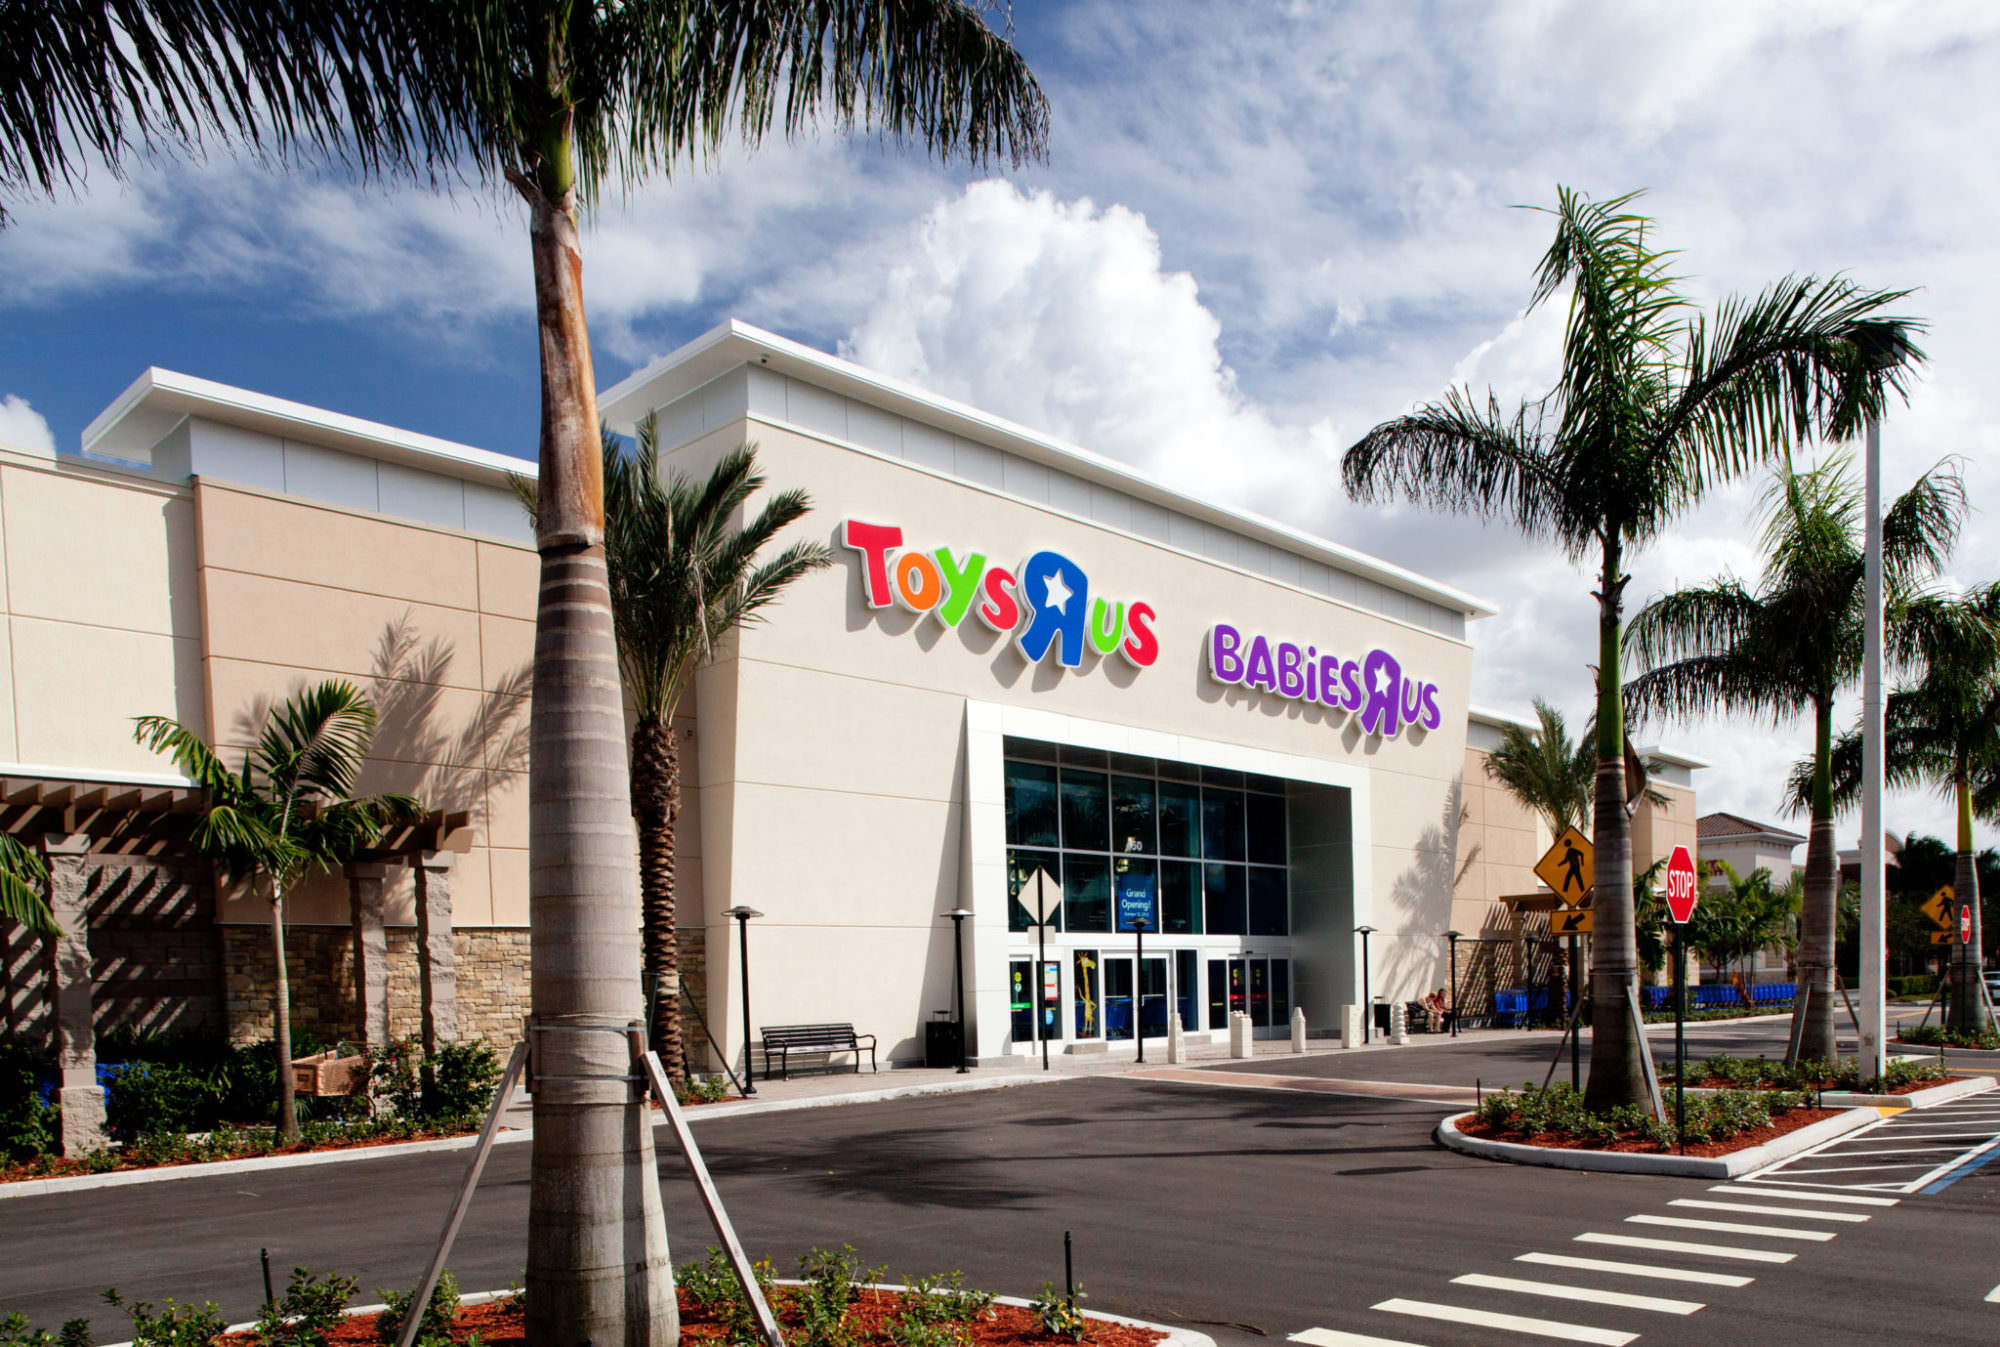 <strong>Toys R Us / Babies R Us</strong><br> Royal Palm Beach, FL